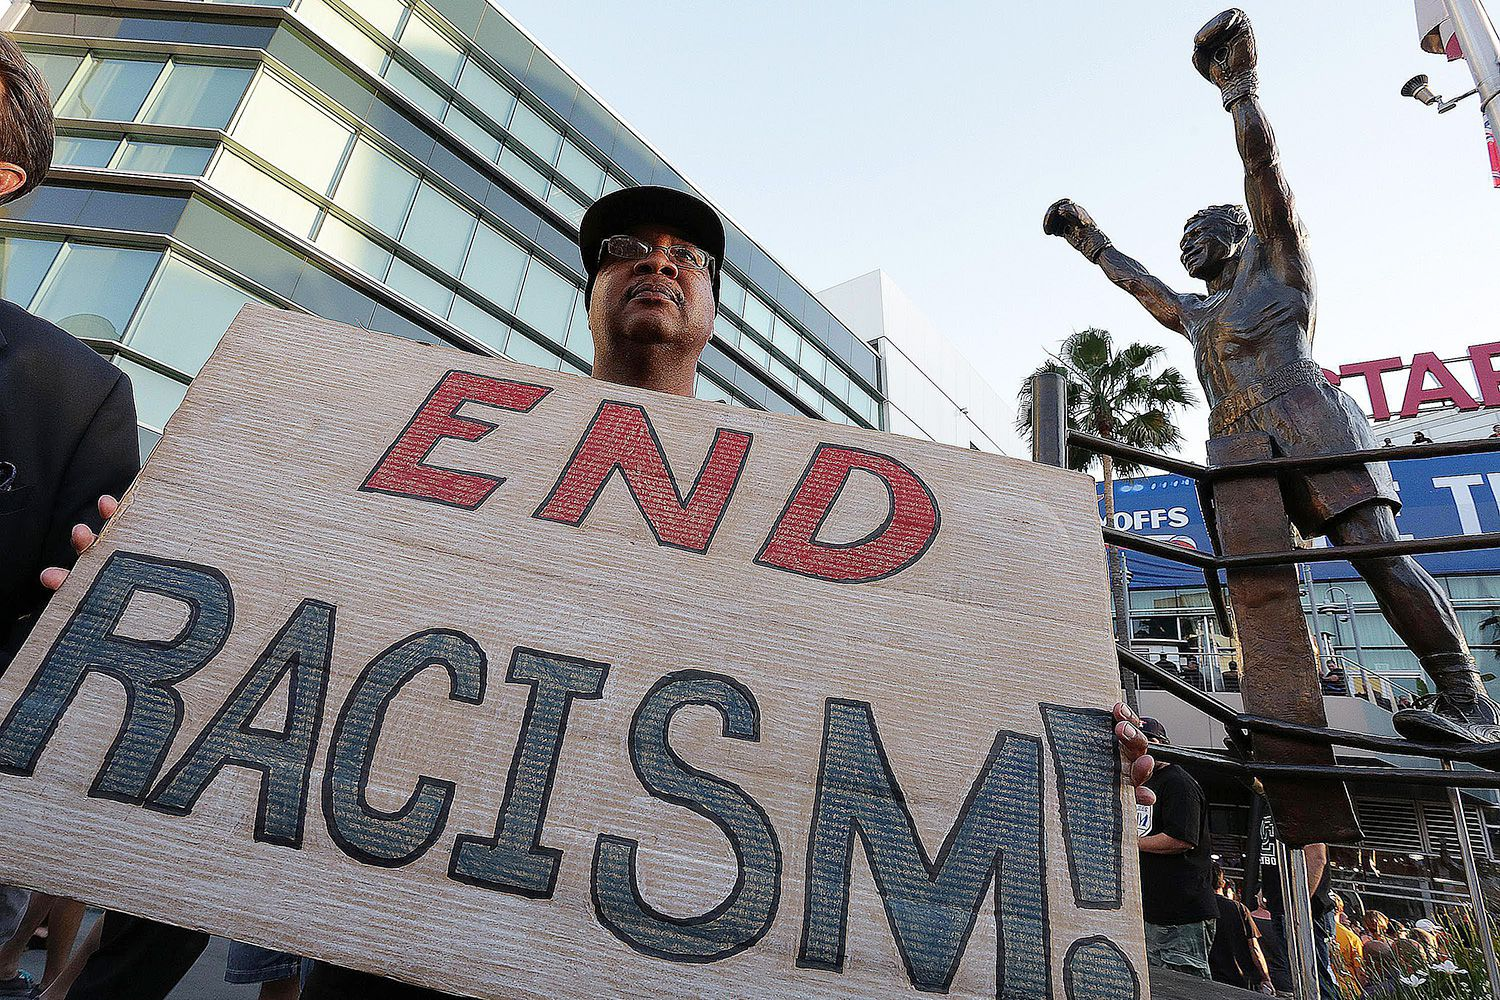 an introduction to the issue of racism in todays society By: carson wendler racism, sexism, and classism are among some of the largest social problems human beings face in the world today all are caused by various splits.